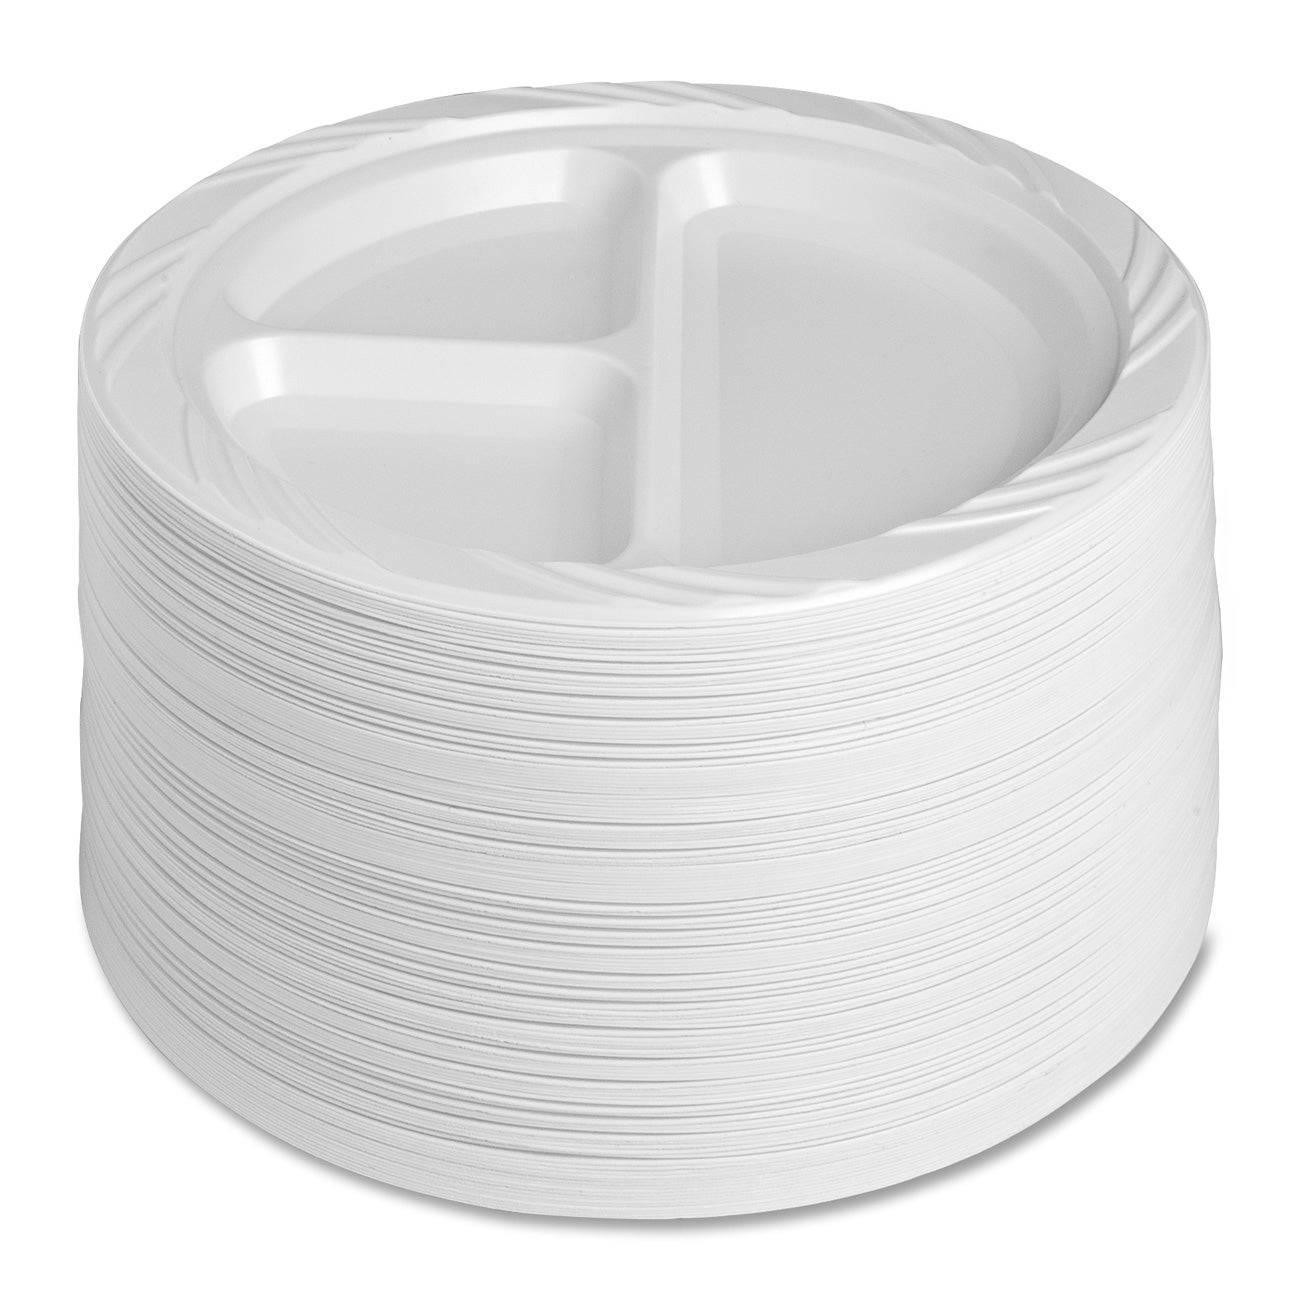 Genuine Joe Reusable/ Disposable 9-inch Divided Plate (Pa...